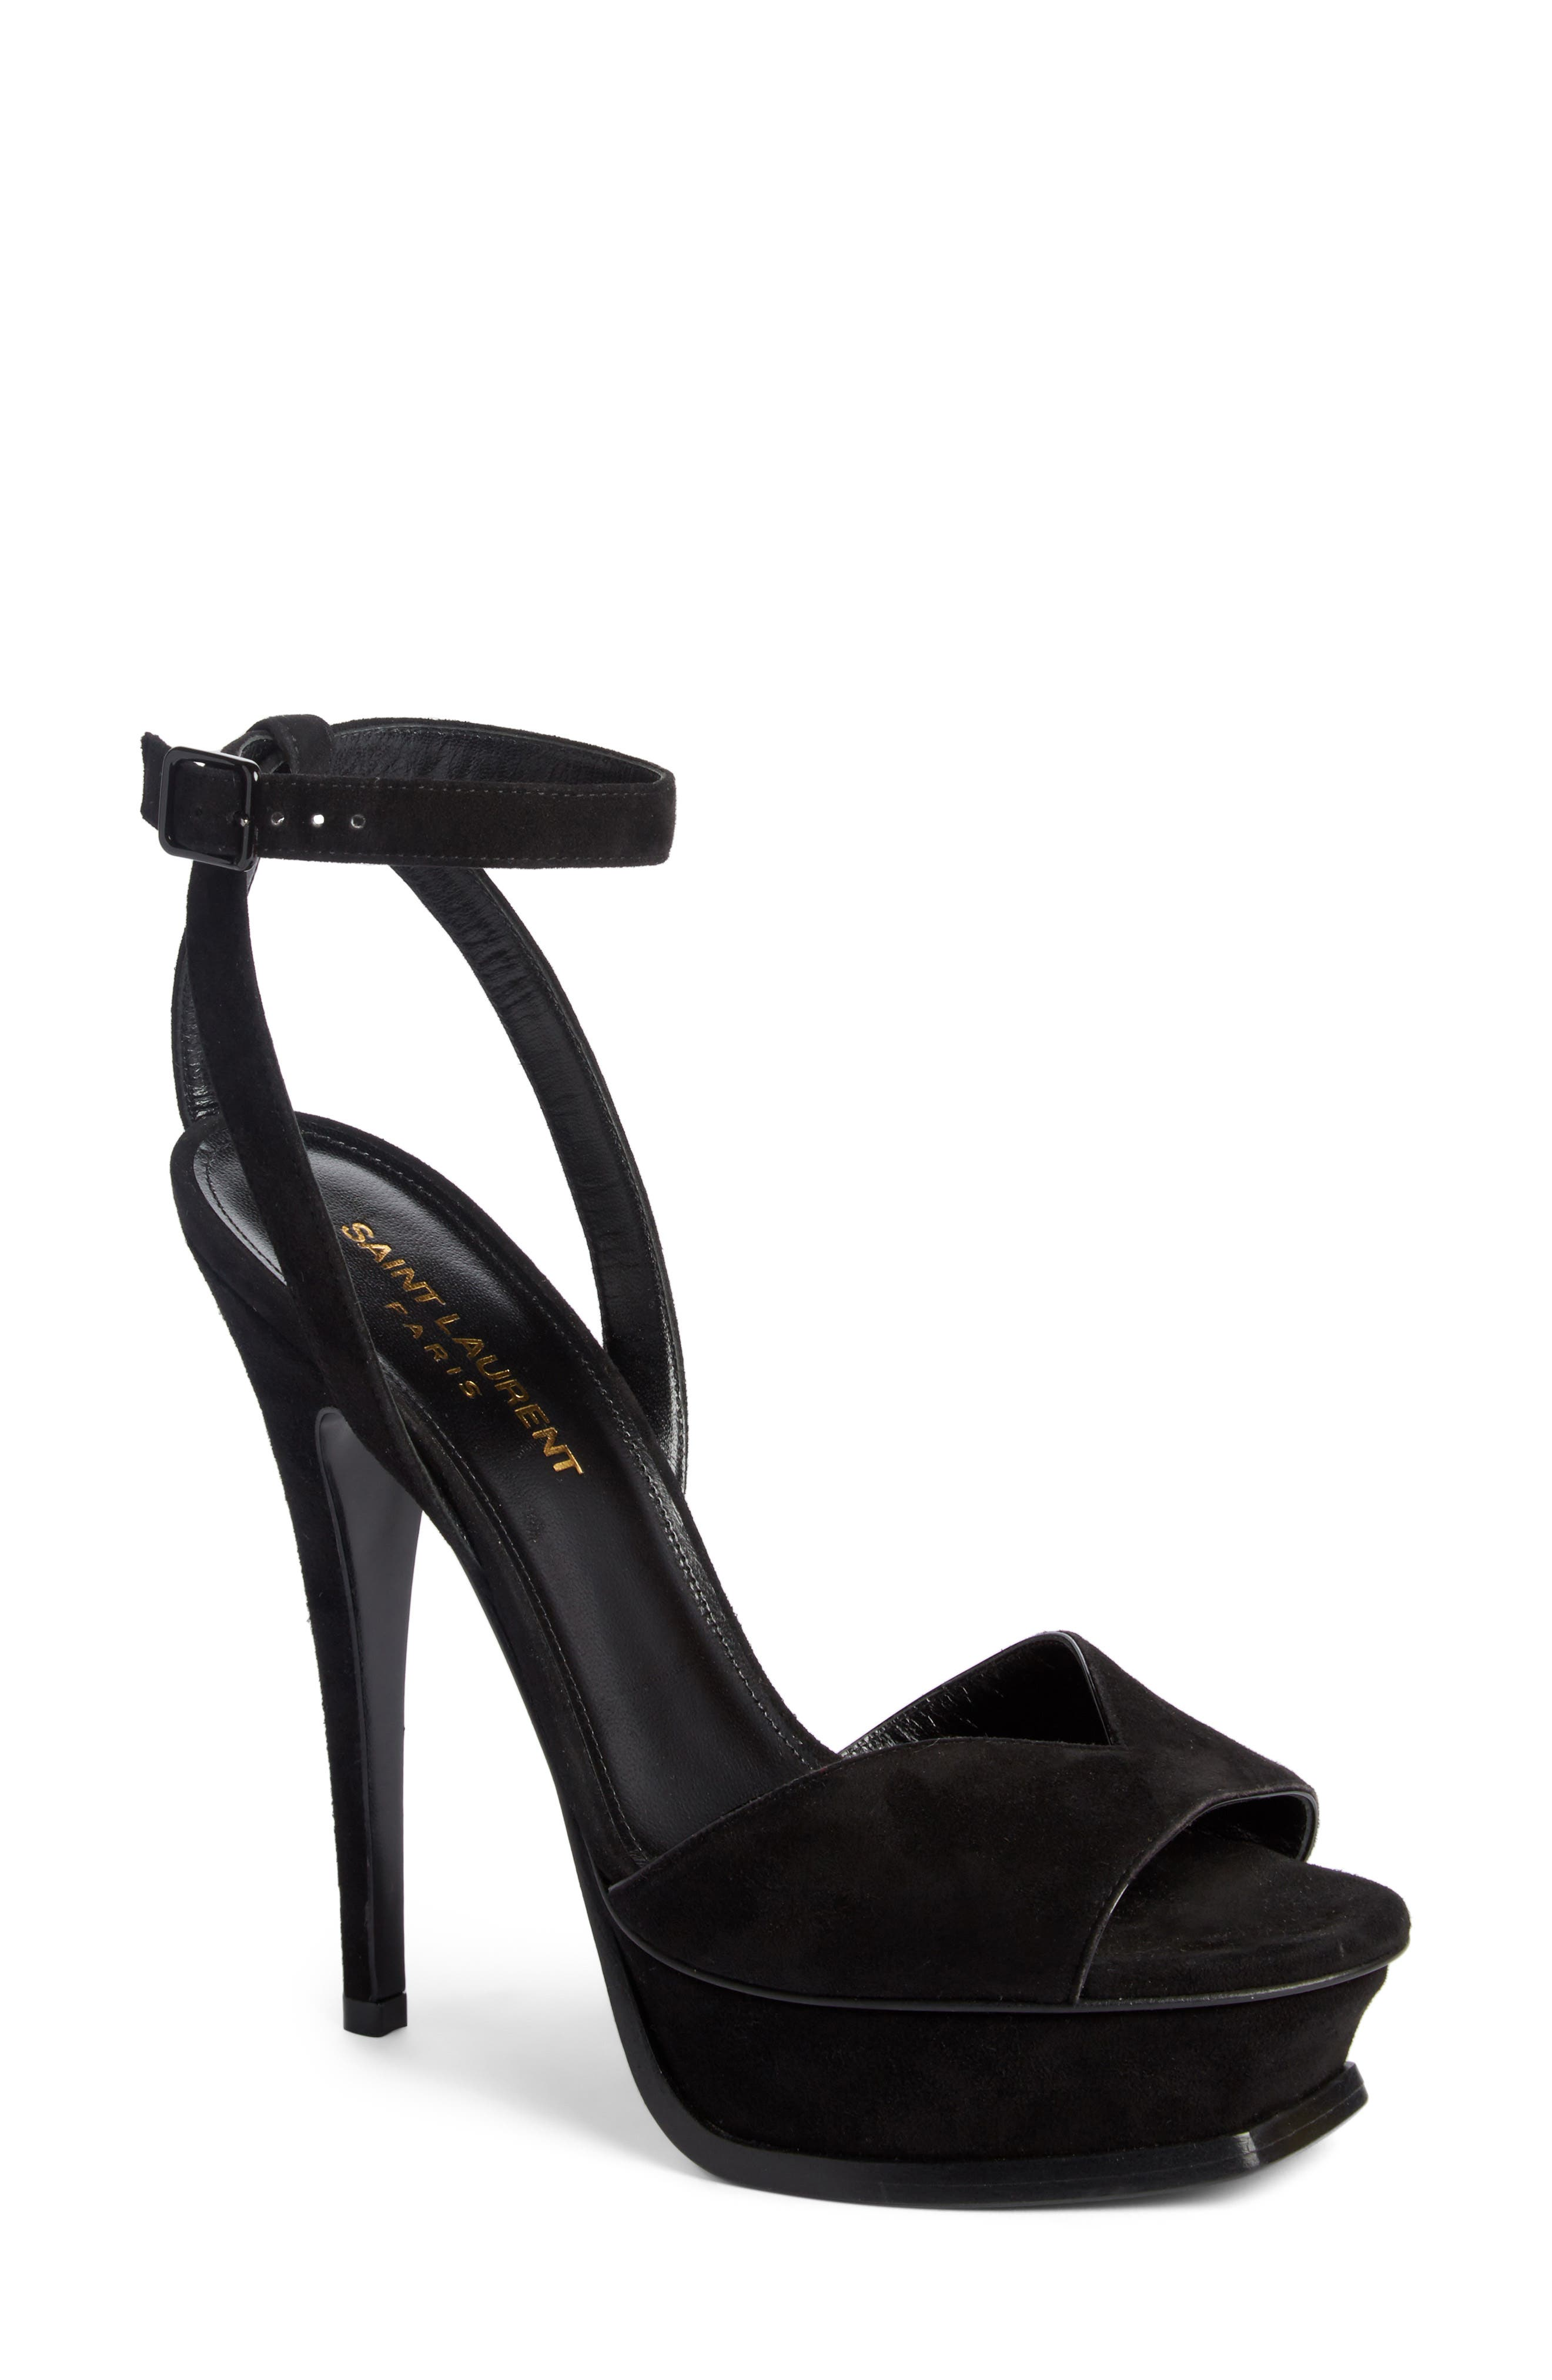 Tribute Platform Sandal,                             Main thumbnail 1, color,                             BLACK